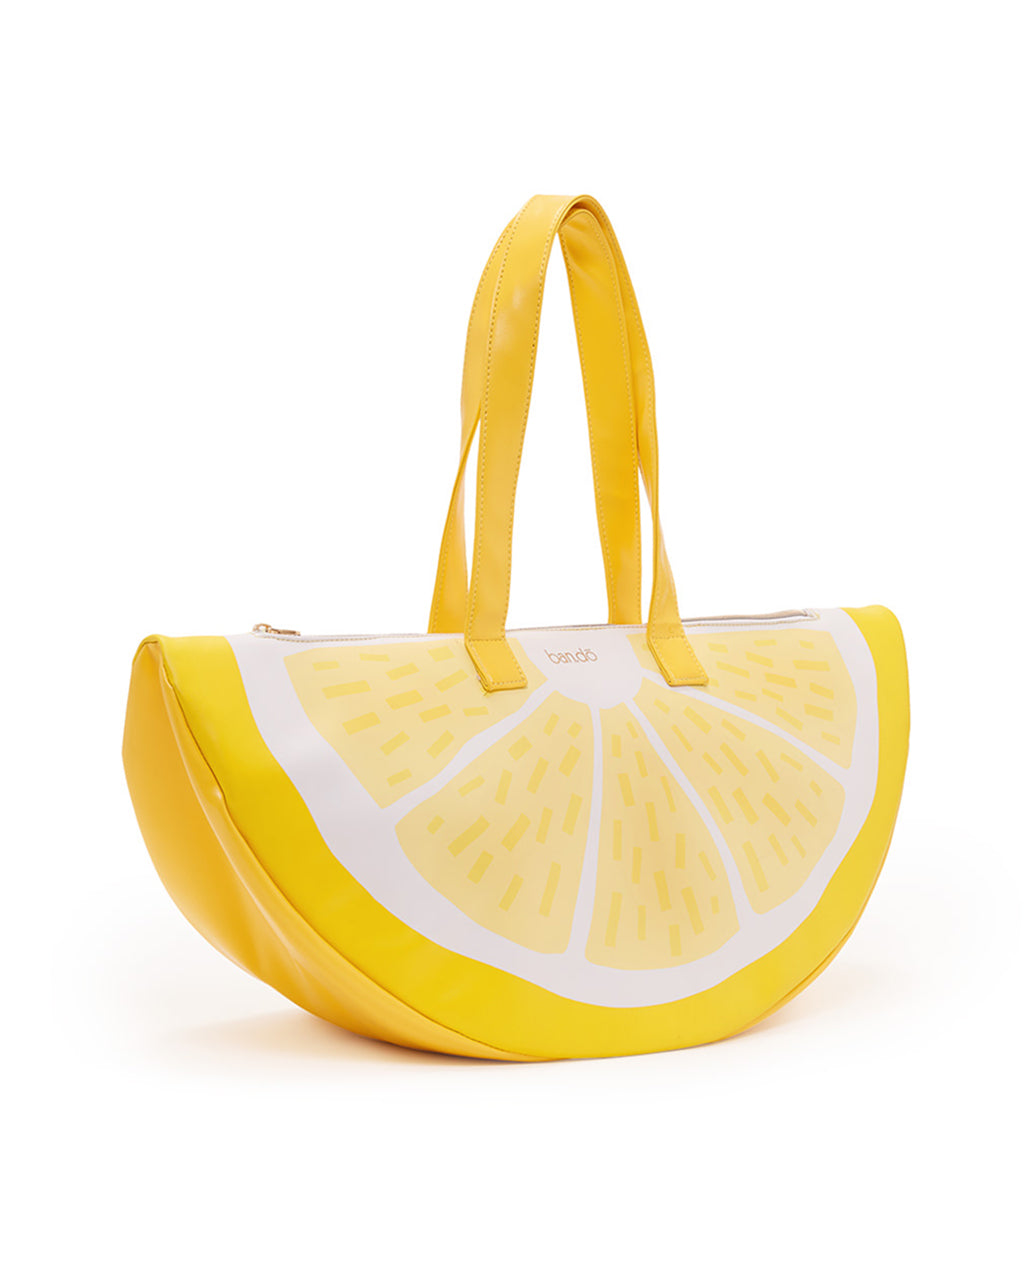 super chill cooler bag - lemon